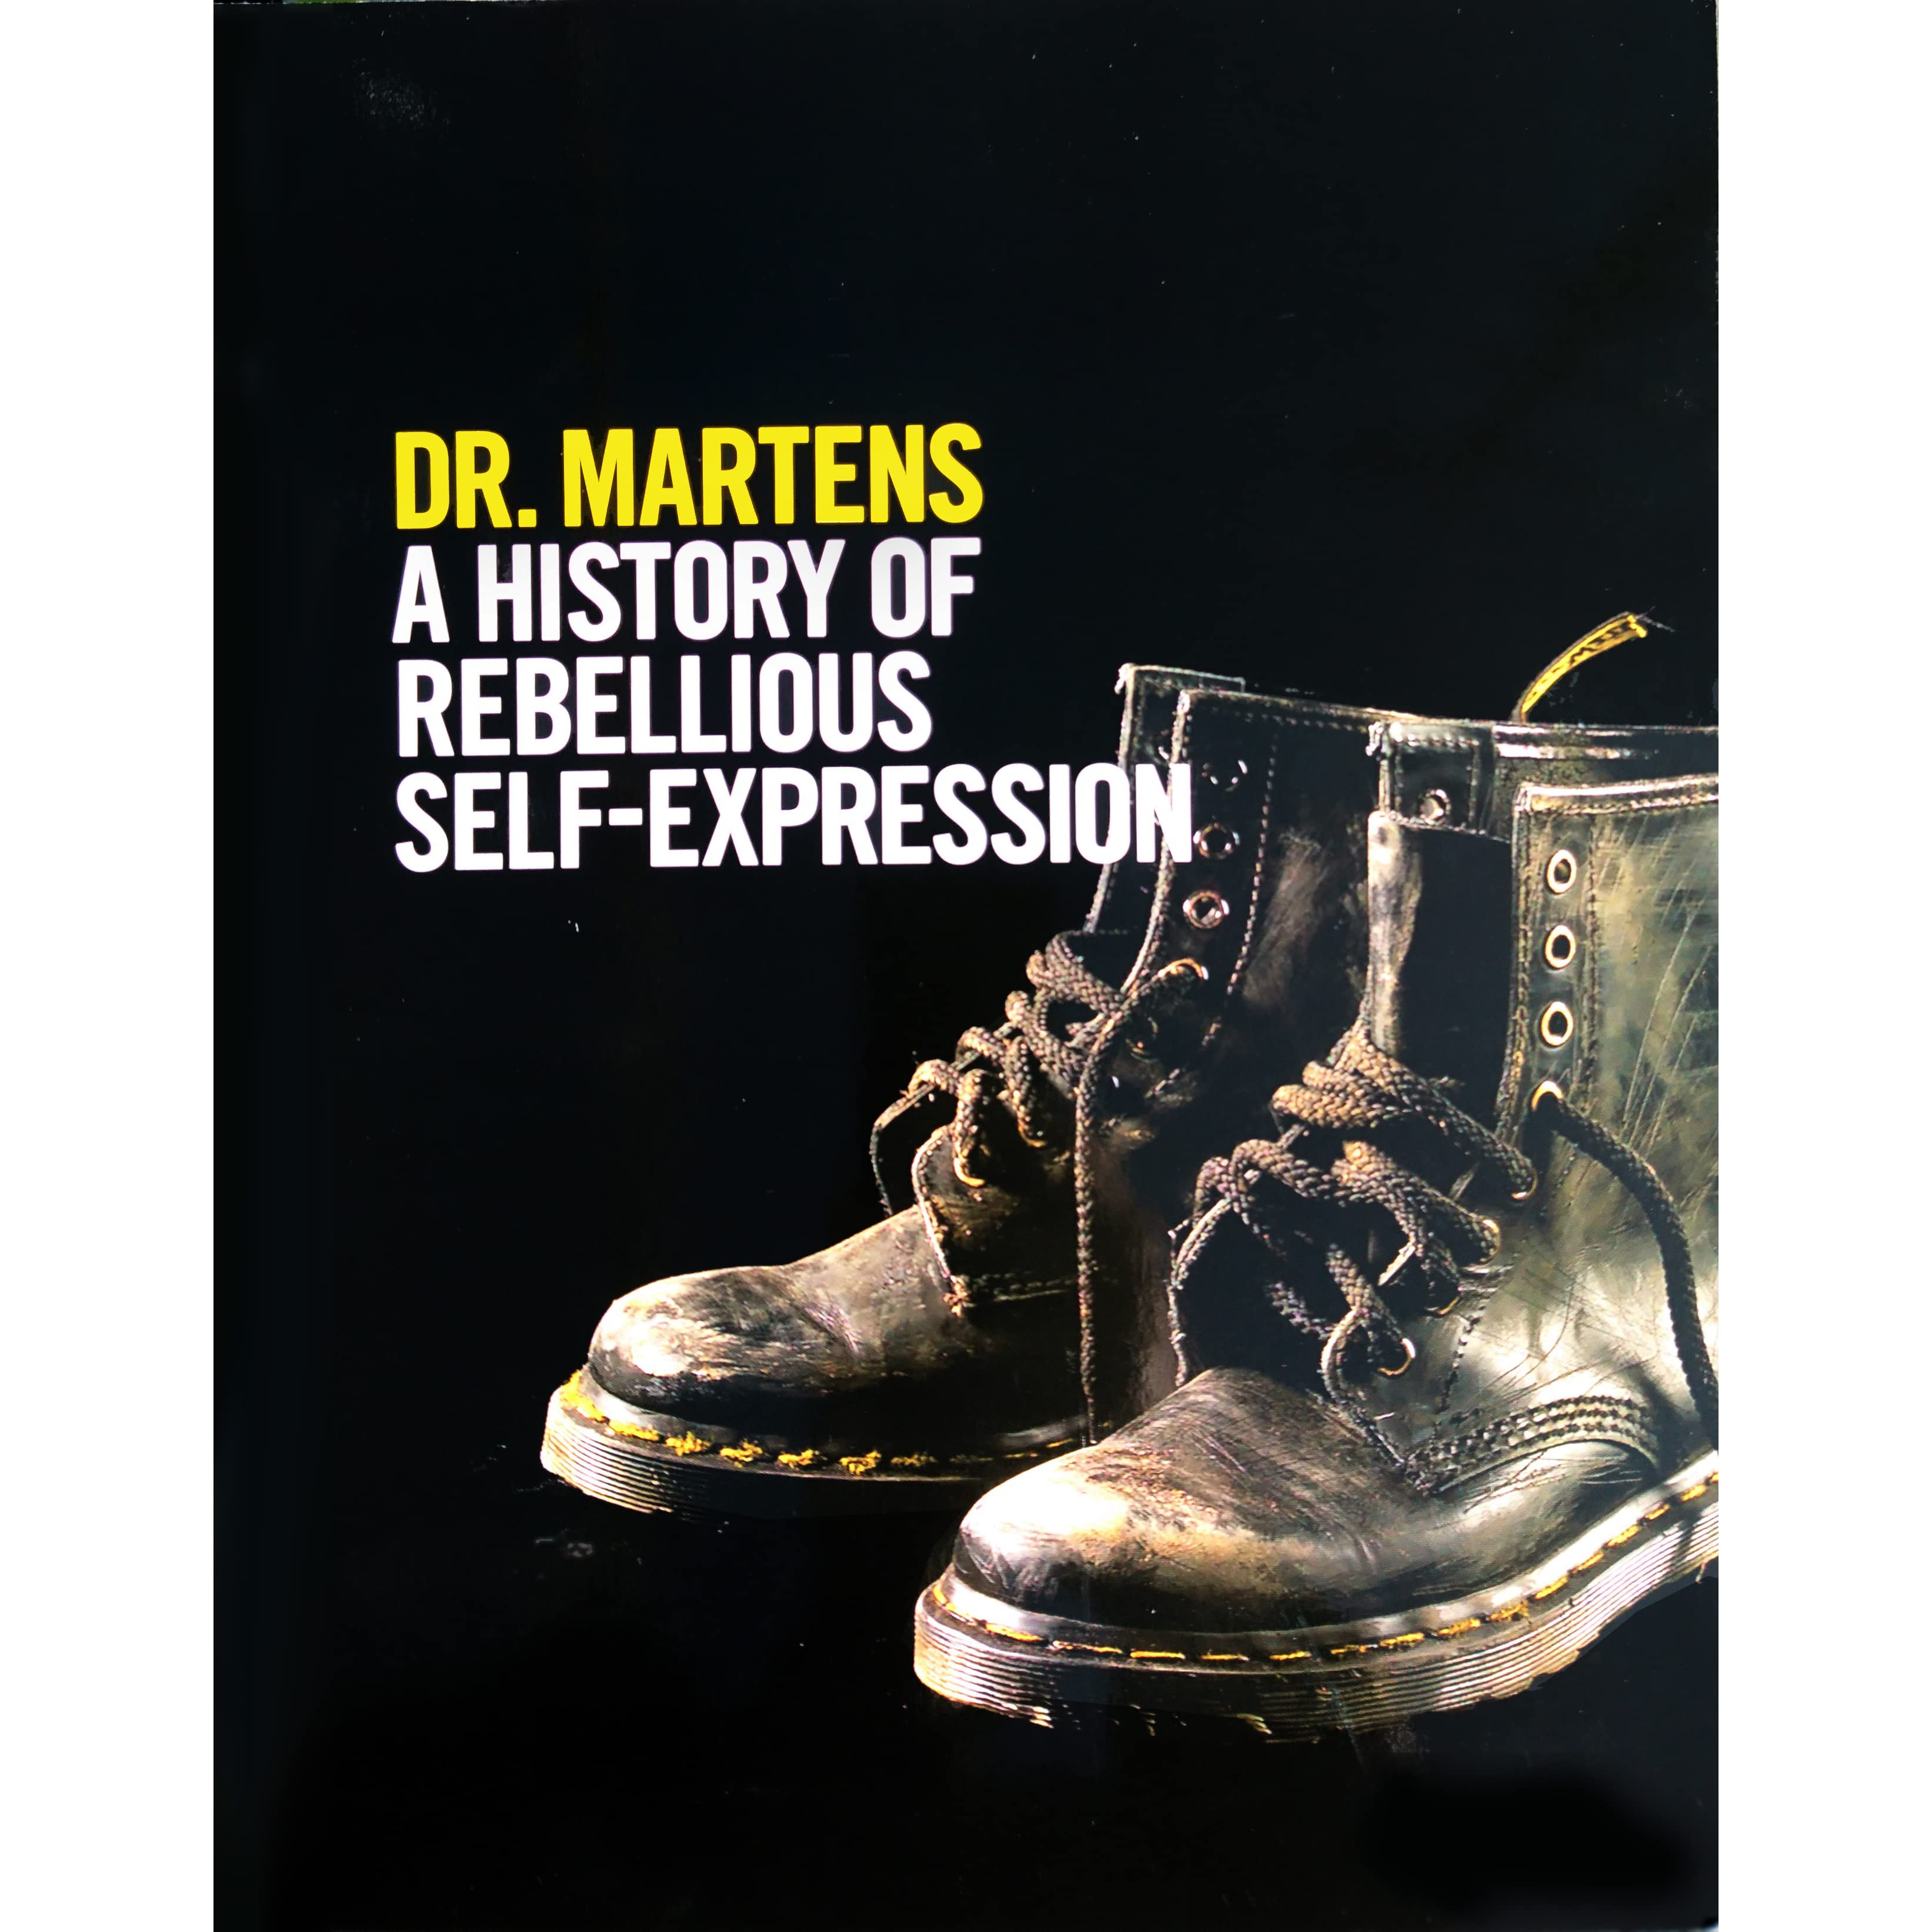 ae185d86cf070e Dr. Martens  A History Of Rebellious Self-Expression by Martin Roach